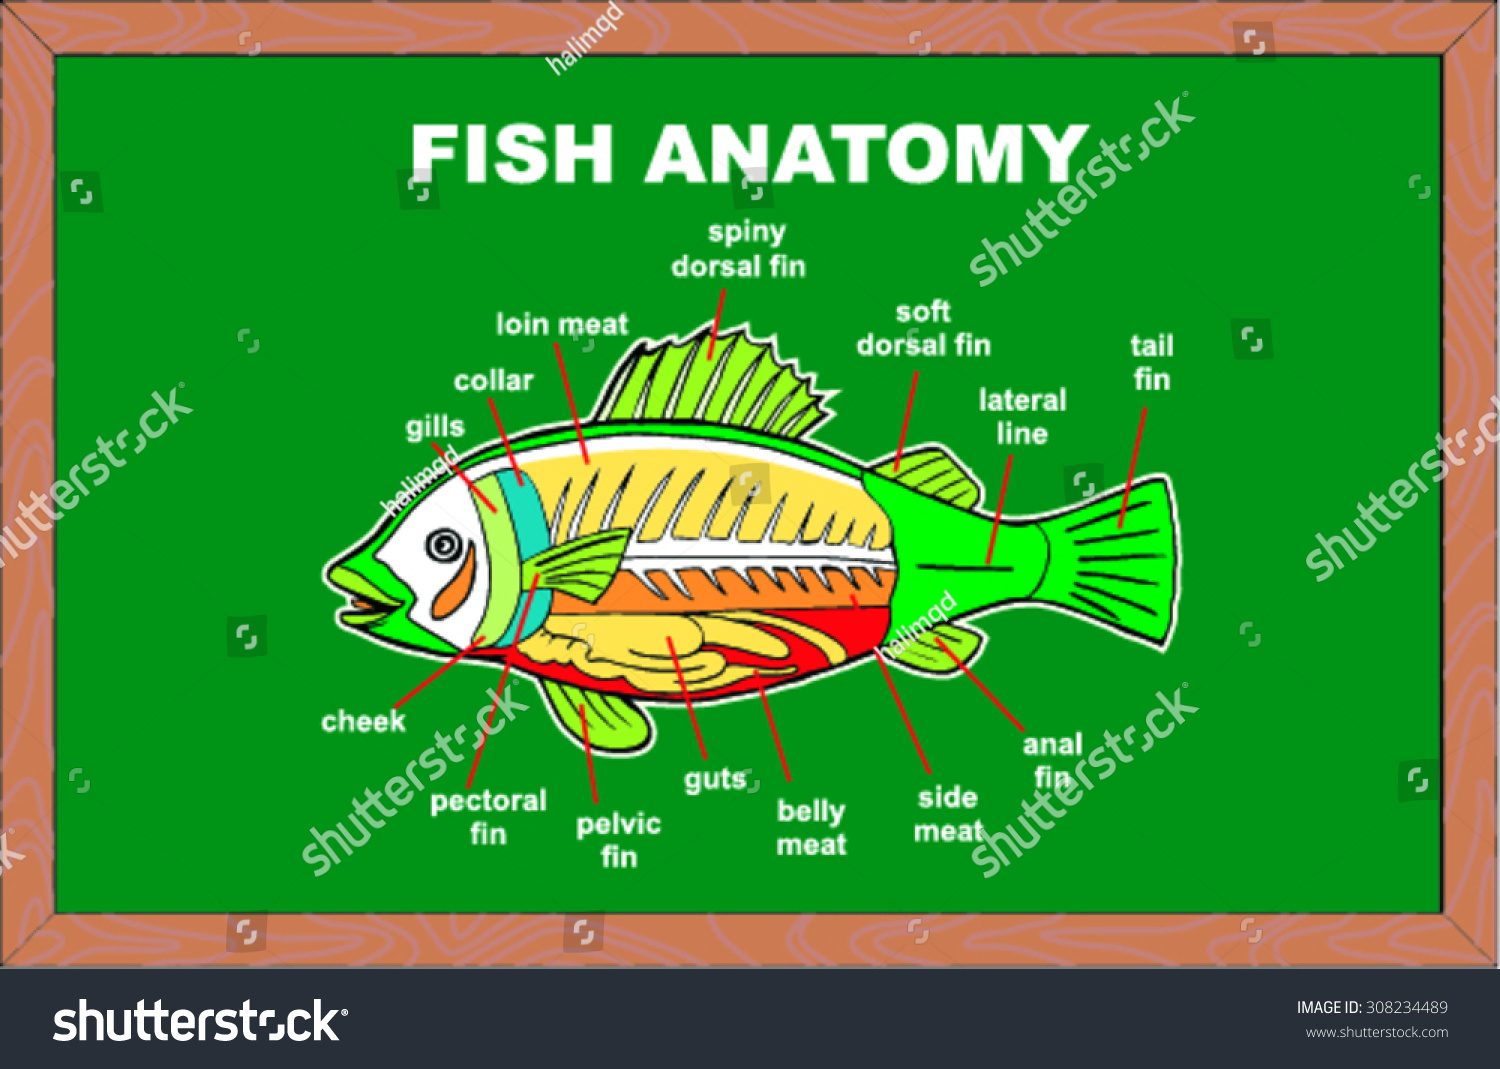 Fish Anatomy Vector Illustration Stock Vector (2018) 308234489 ...